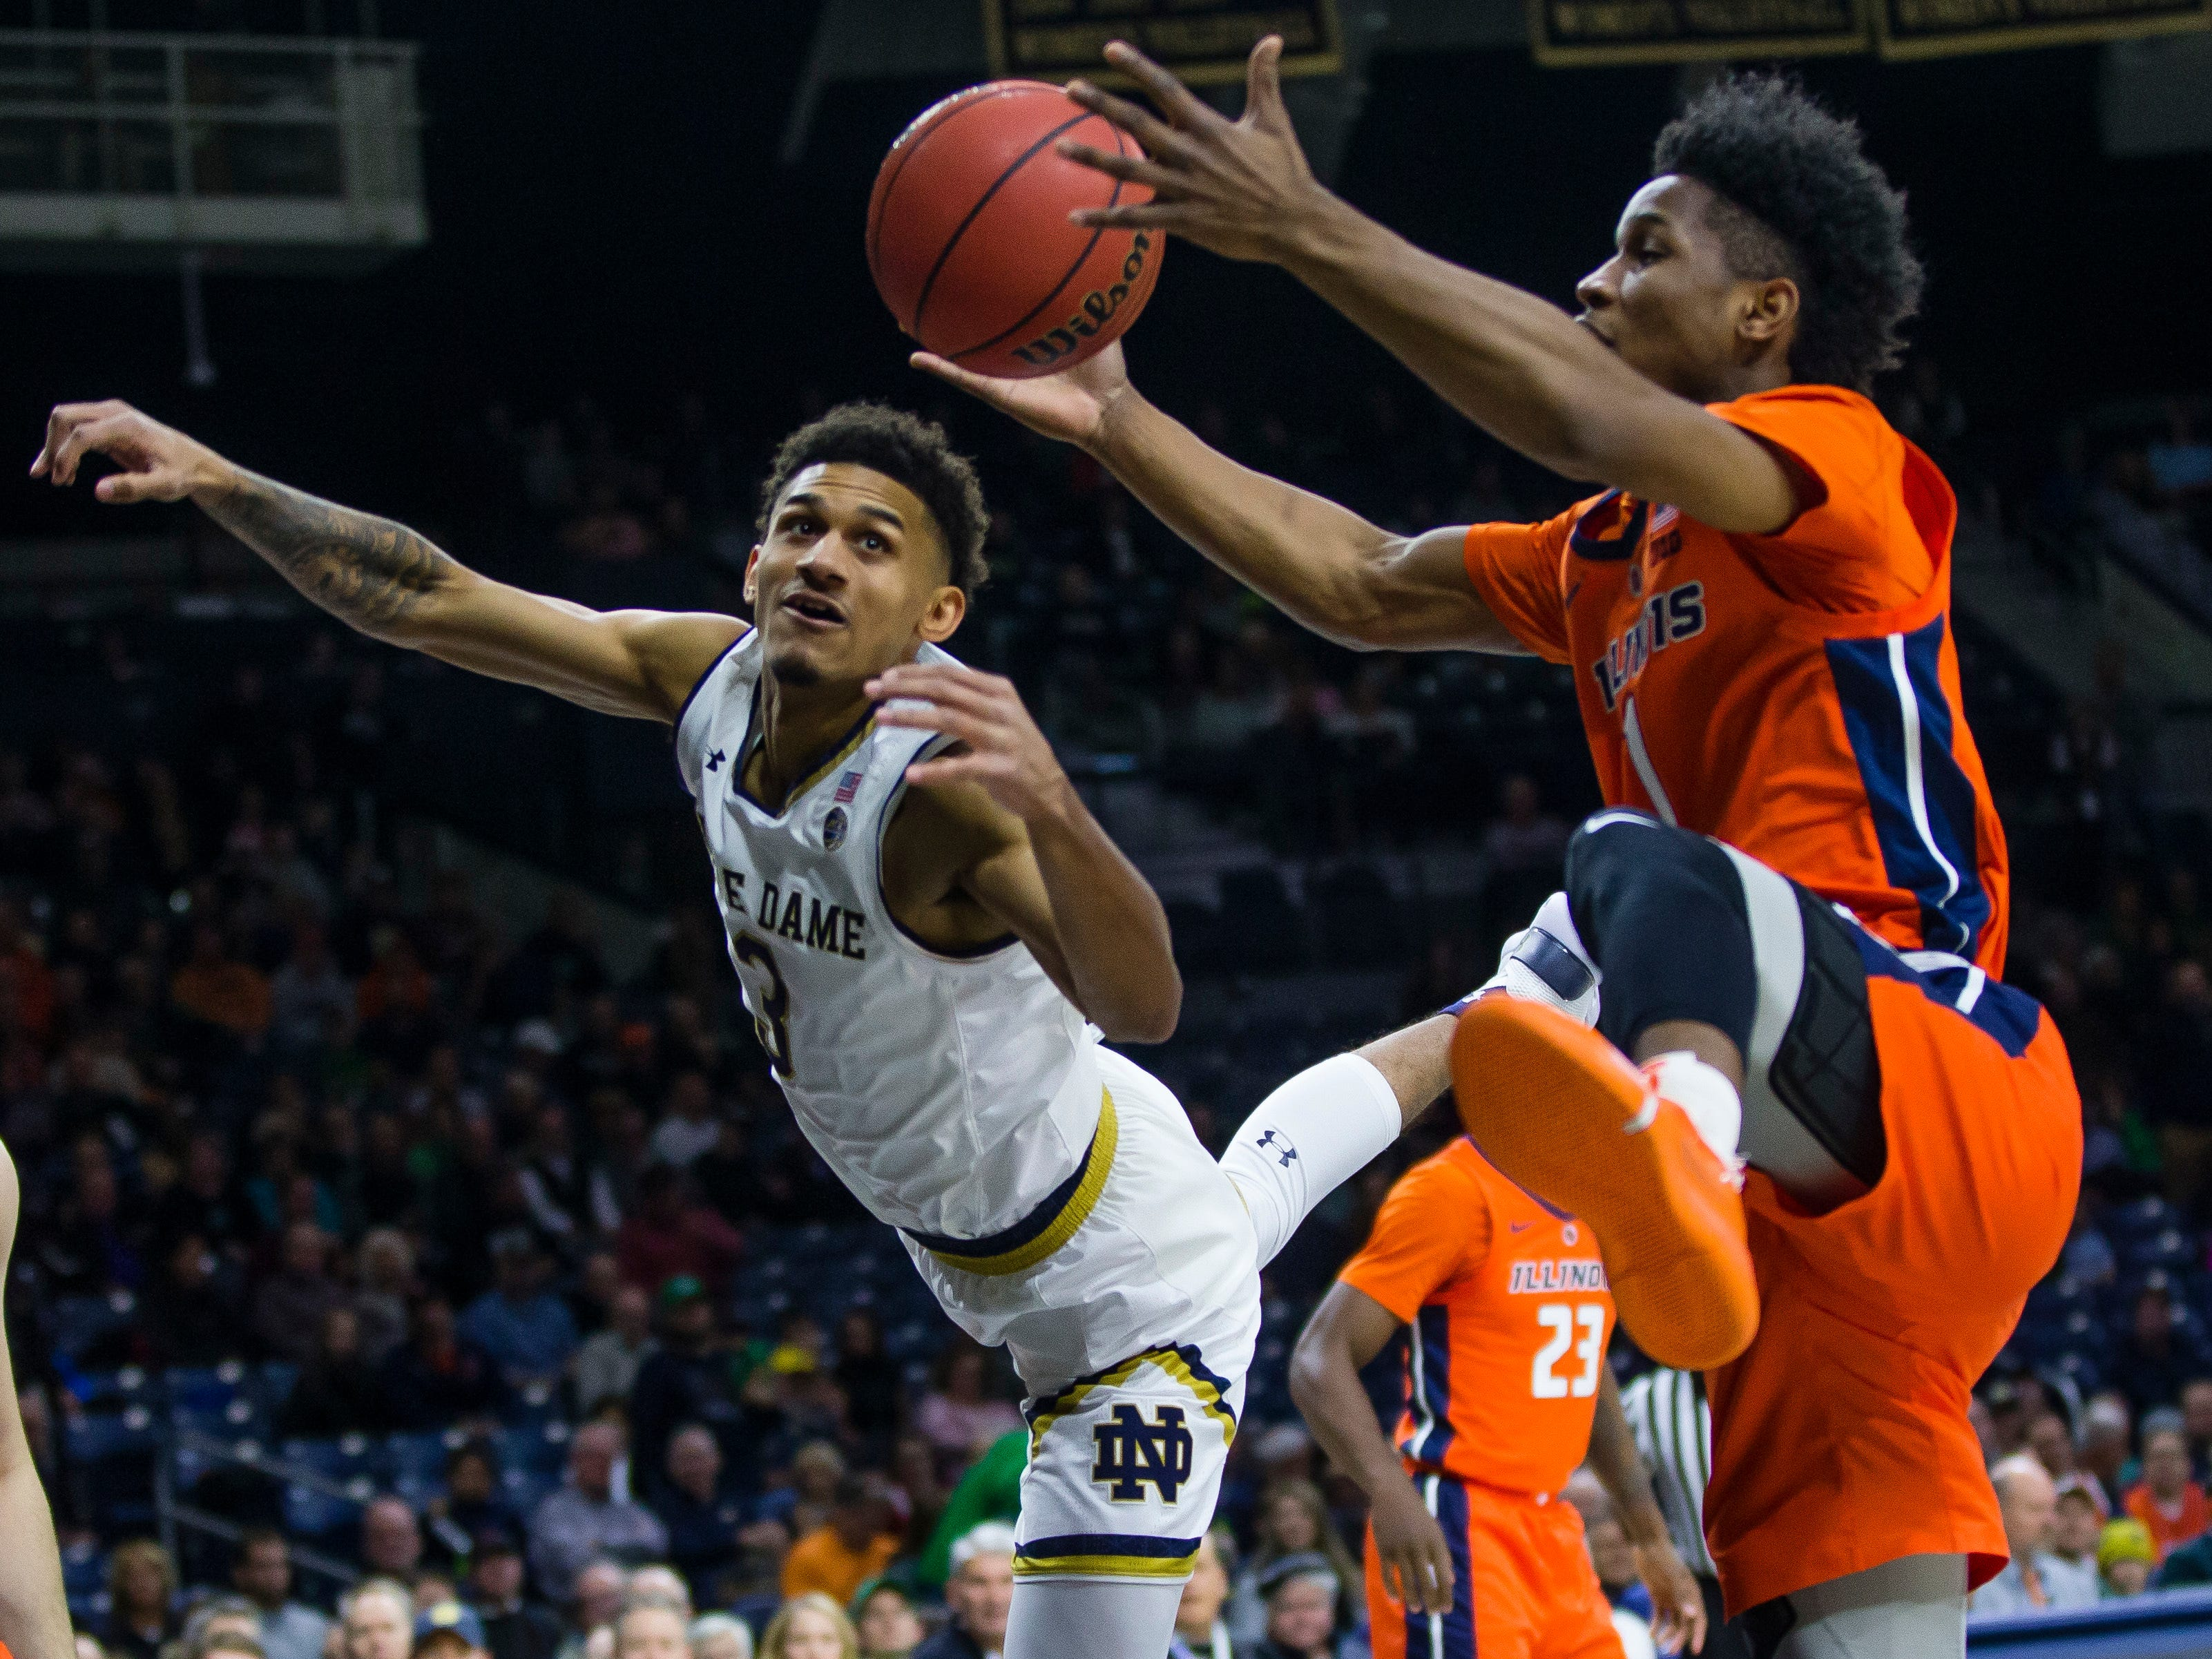 Notre Dame's Prentiss Hubb (3) and Illinois' Trent Frazier (1) fight for a rebound during an NCAA college basketball game Tuesday, Nov. 27, 2018, in South Bend, Ind. (Michael Caterina/South Bend Tribune via AP)